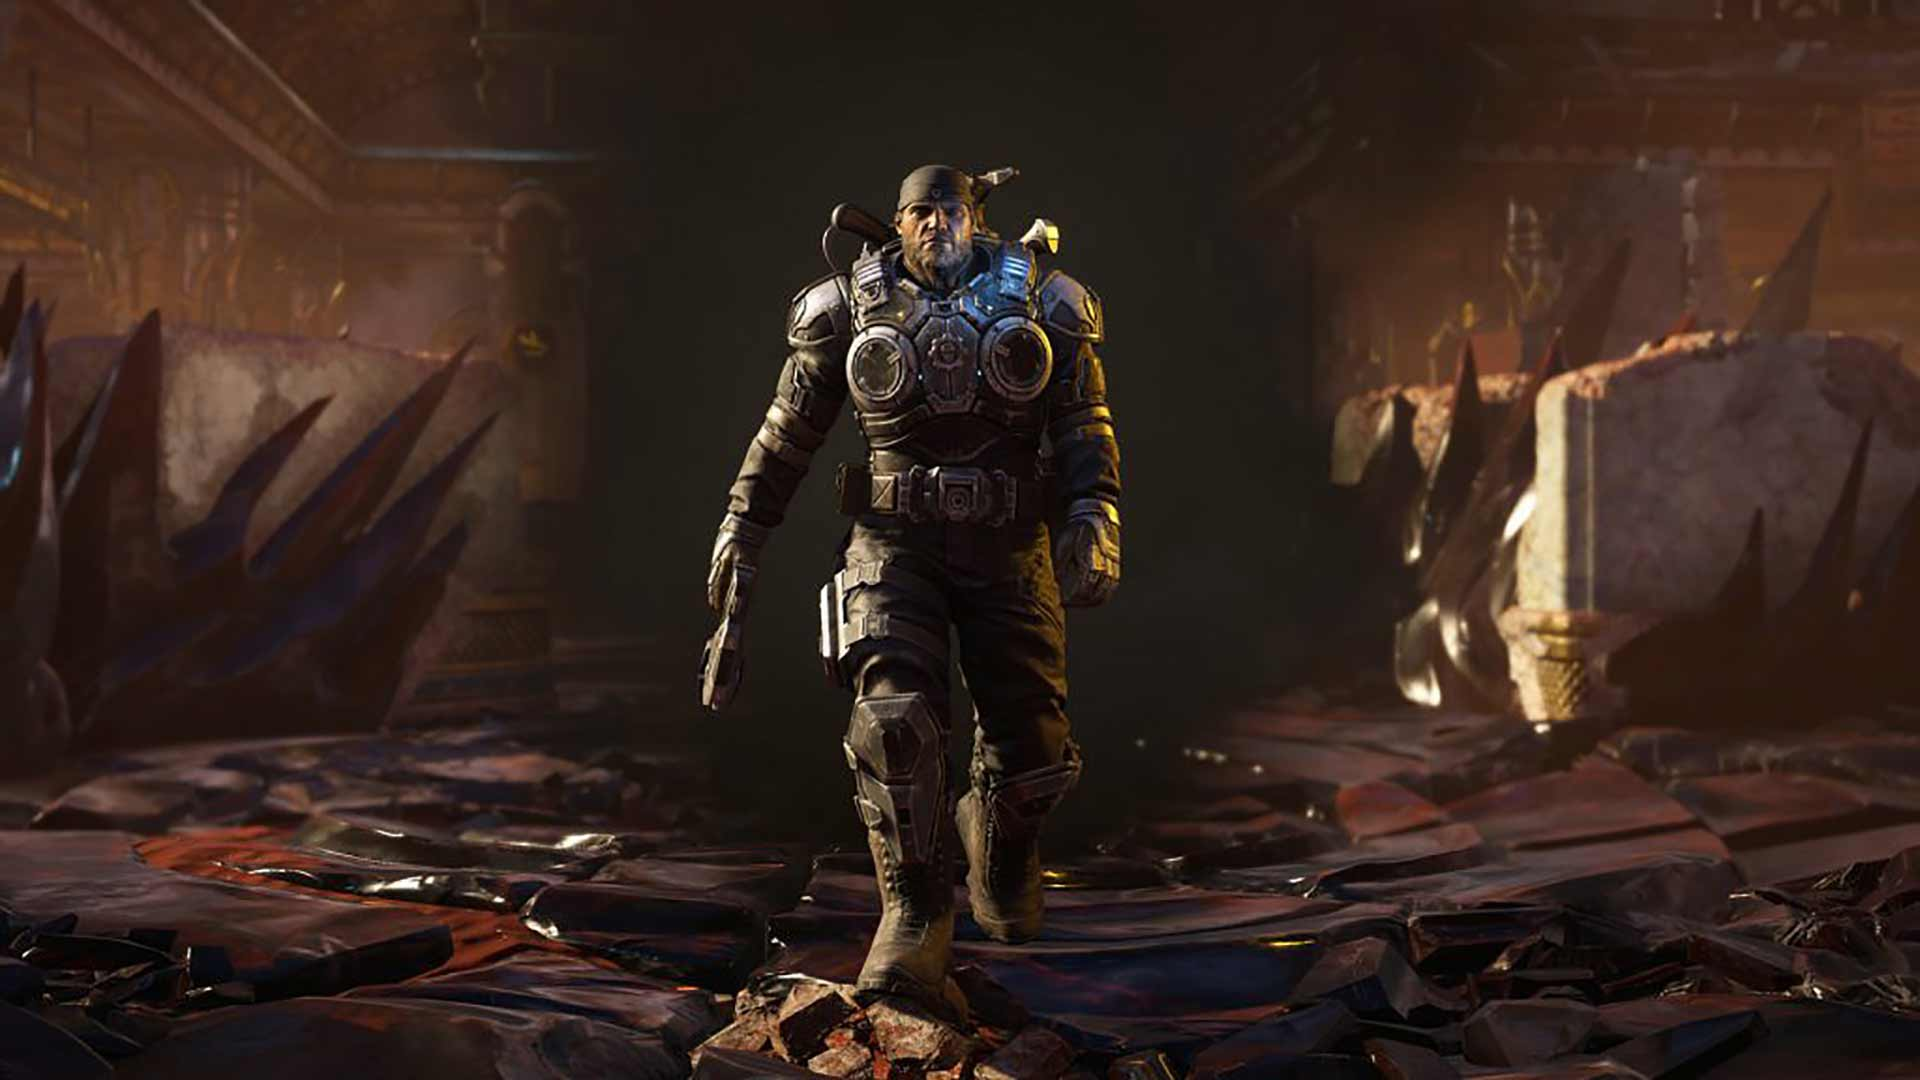 The Coalition would be developing Gears 6